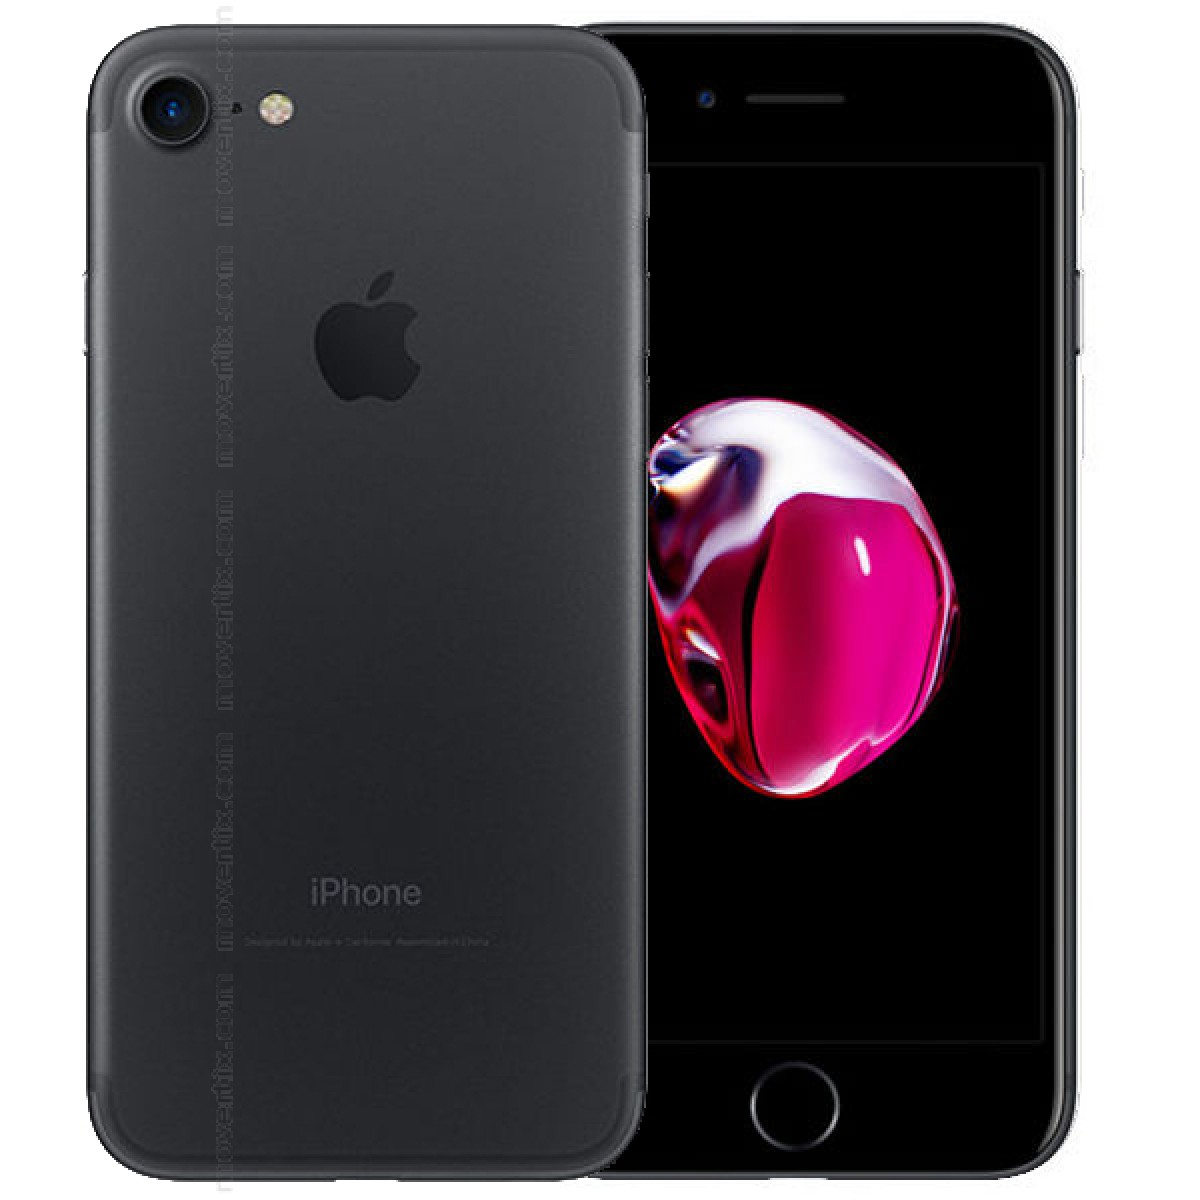 Flipkart will give great discounts on smartphones iPhone 7 Black